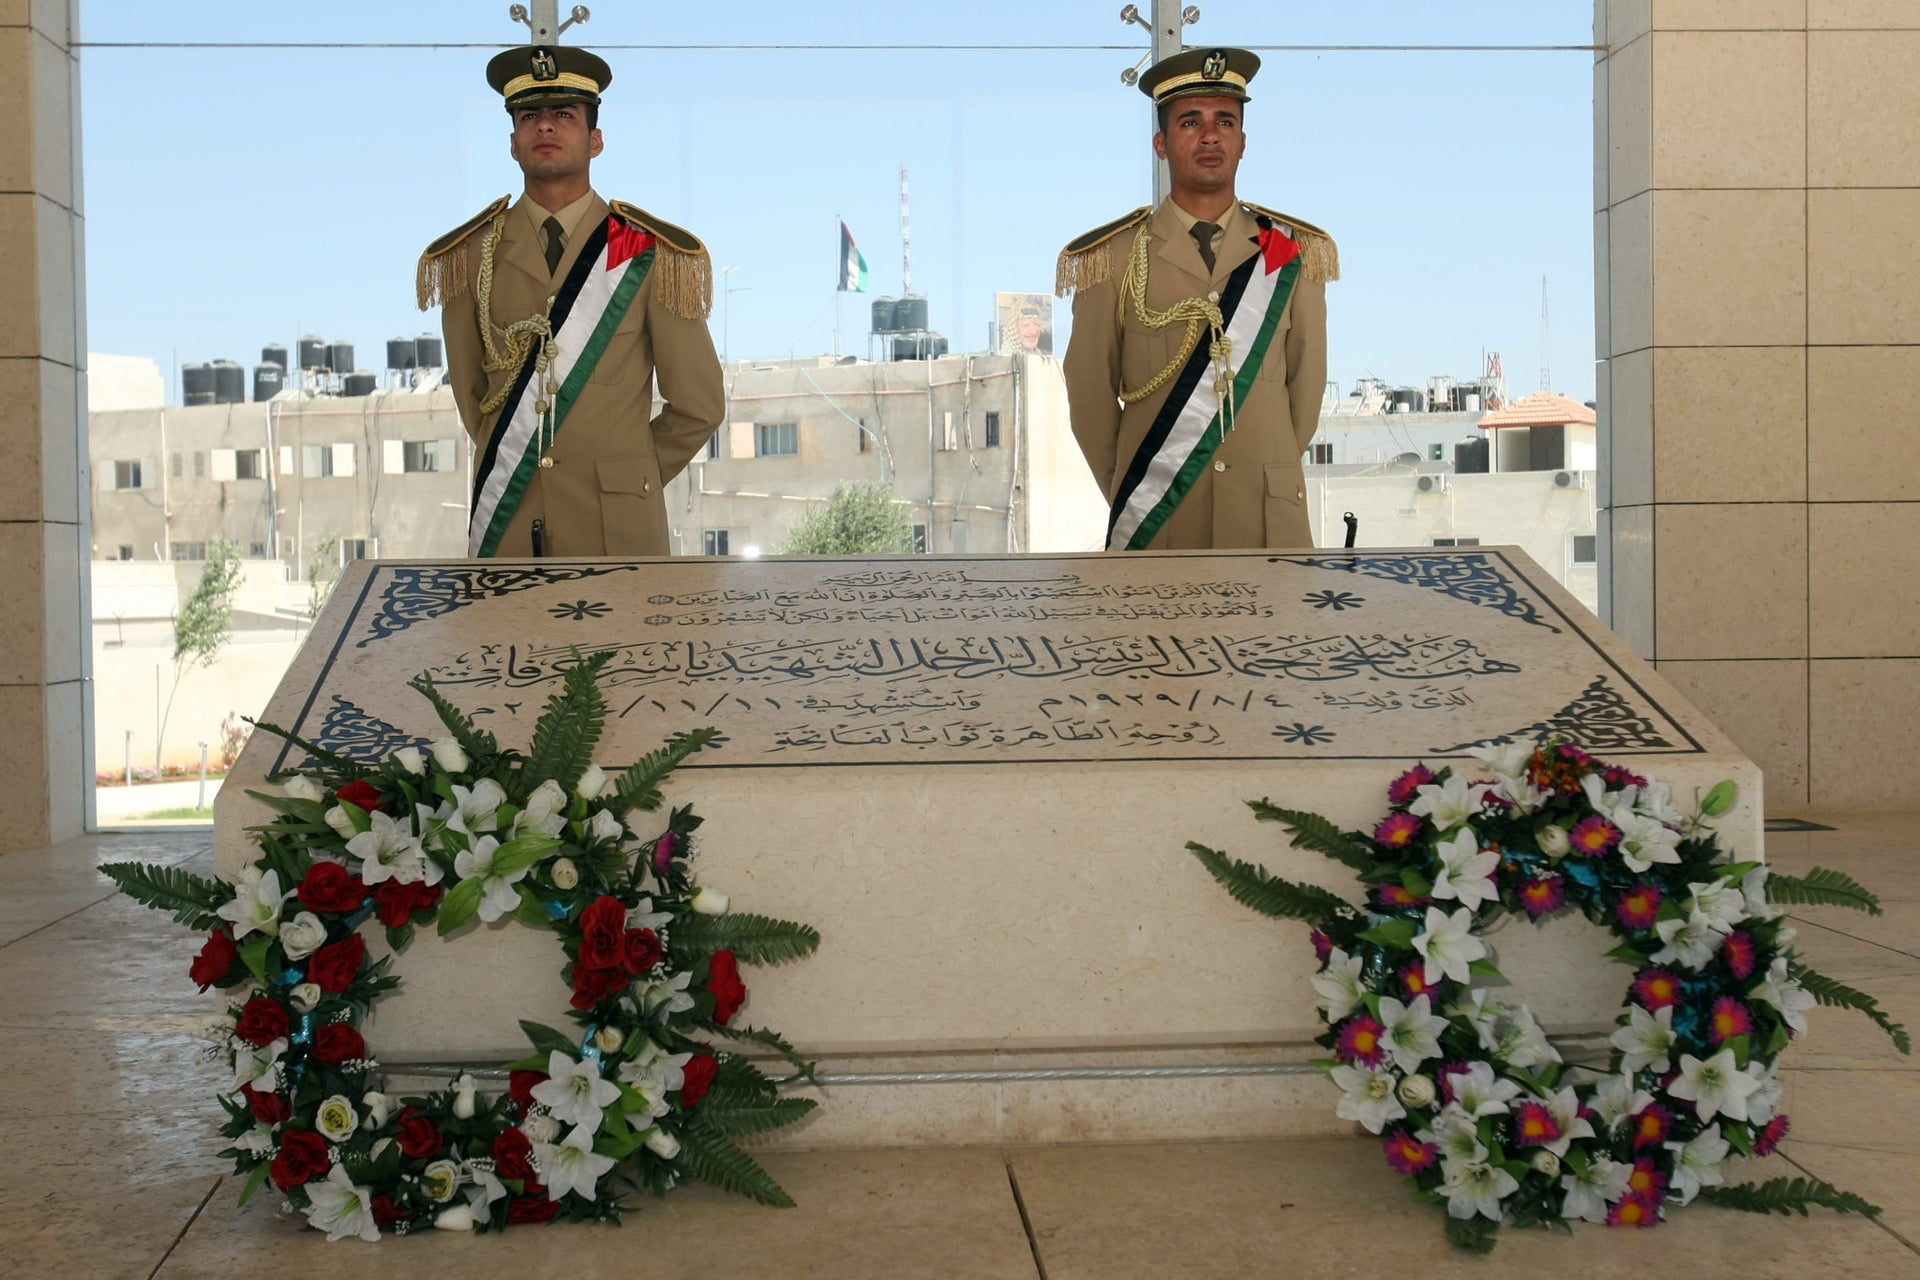 The tomb of late Palestinian leader Yasser Arafat in the West Bank city of Ramallah.